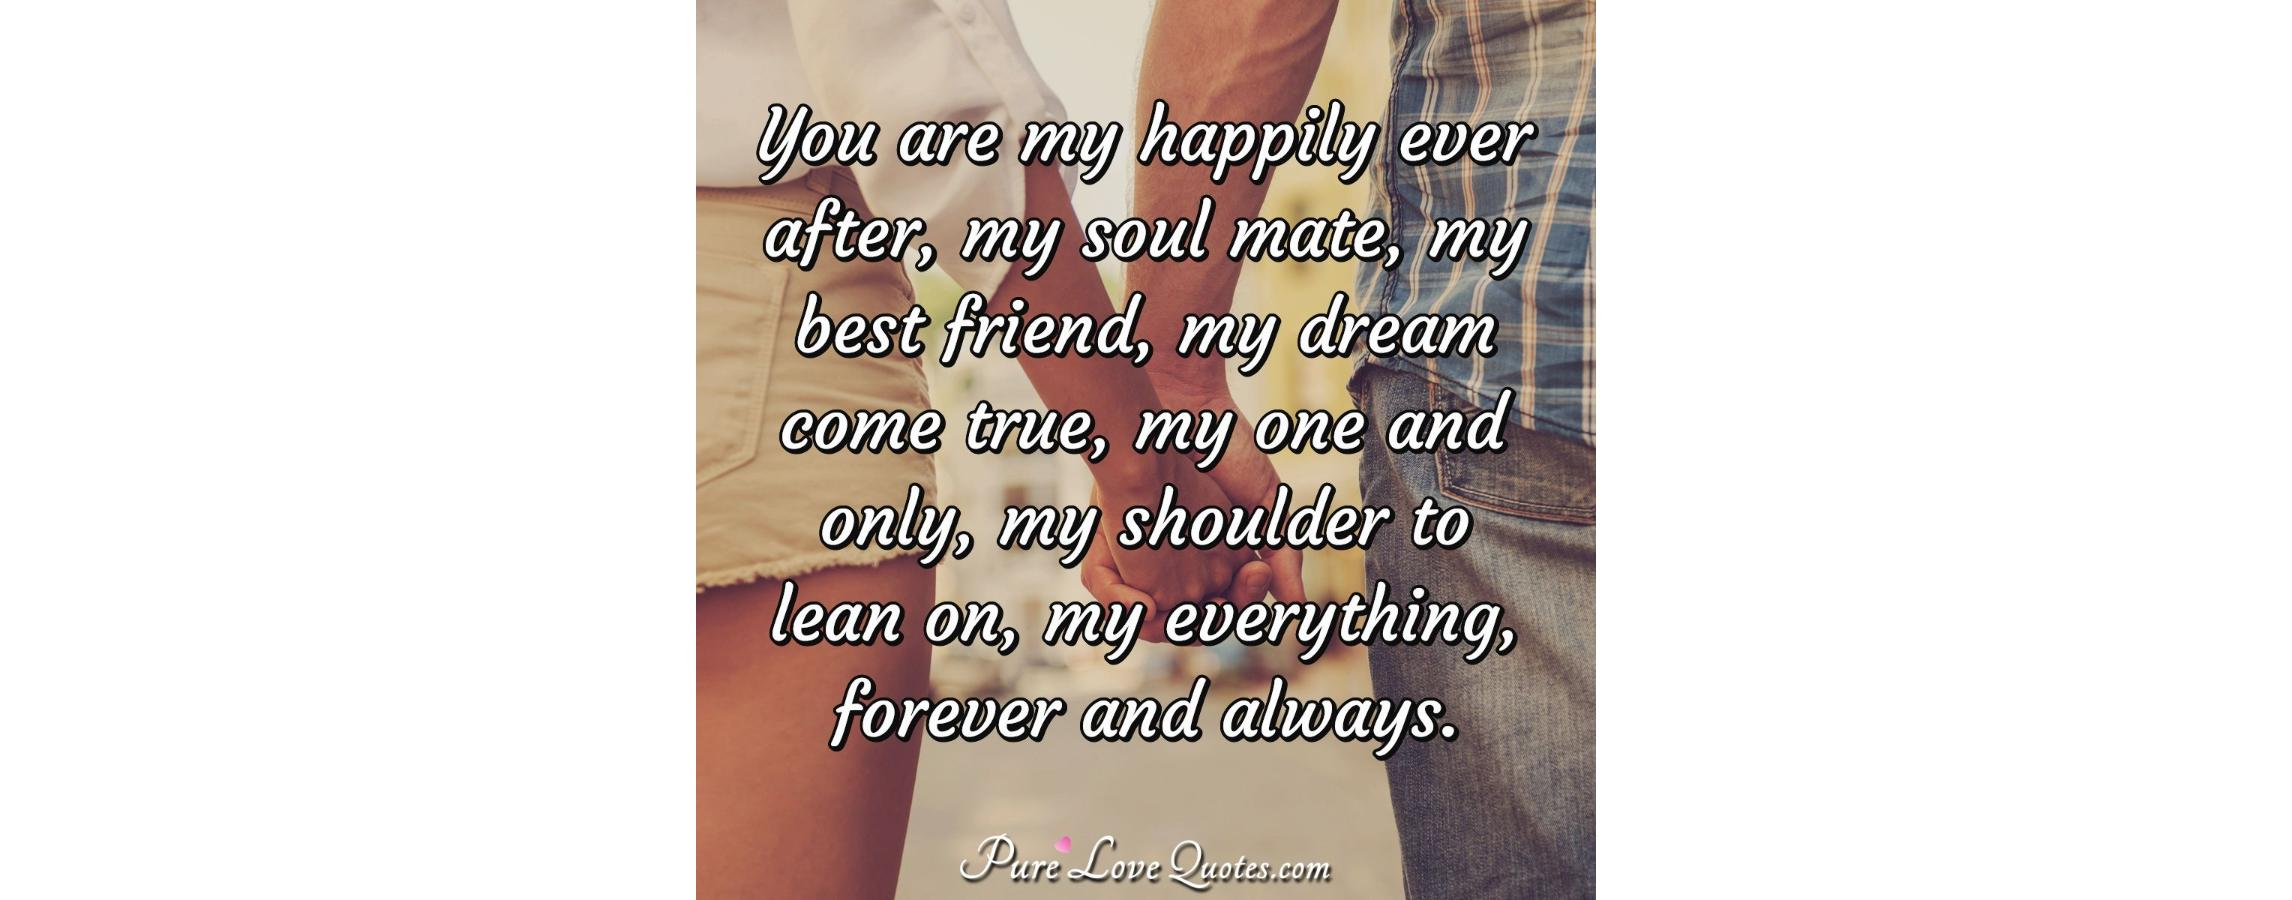 Mate Are Soul You After Happily Ever My My